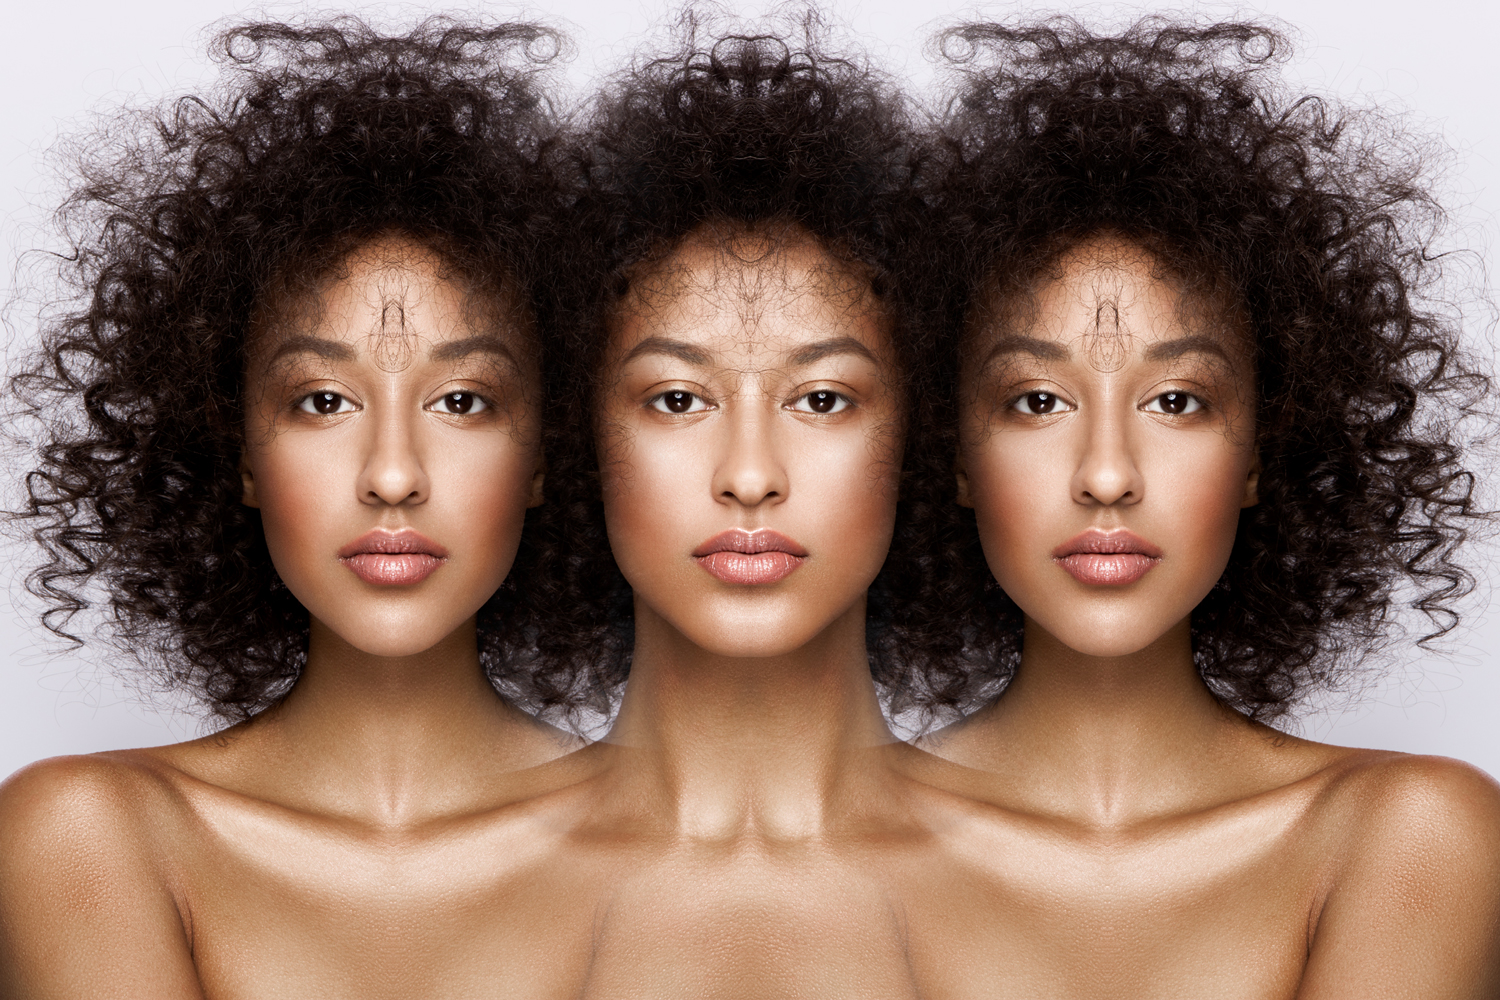 A triad of portraits containing symmetrical variations